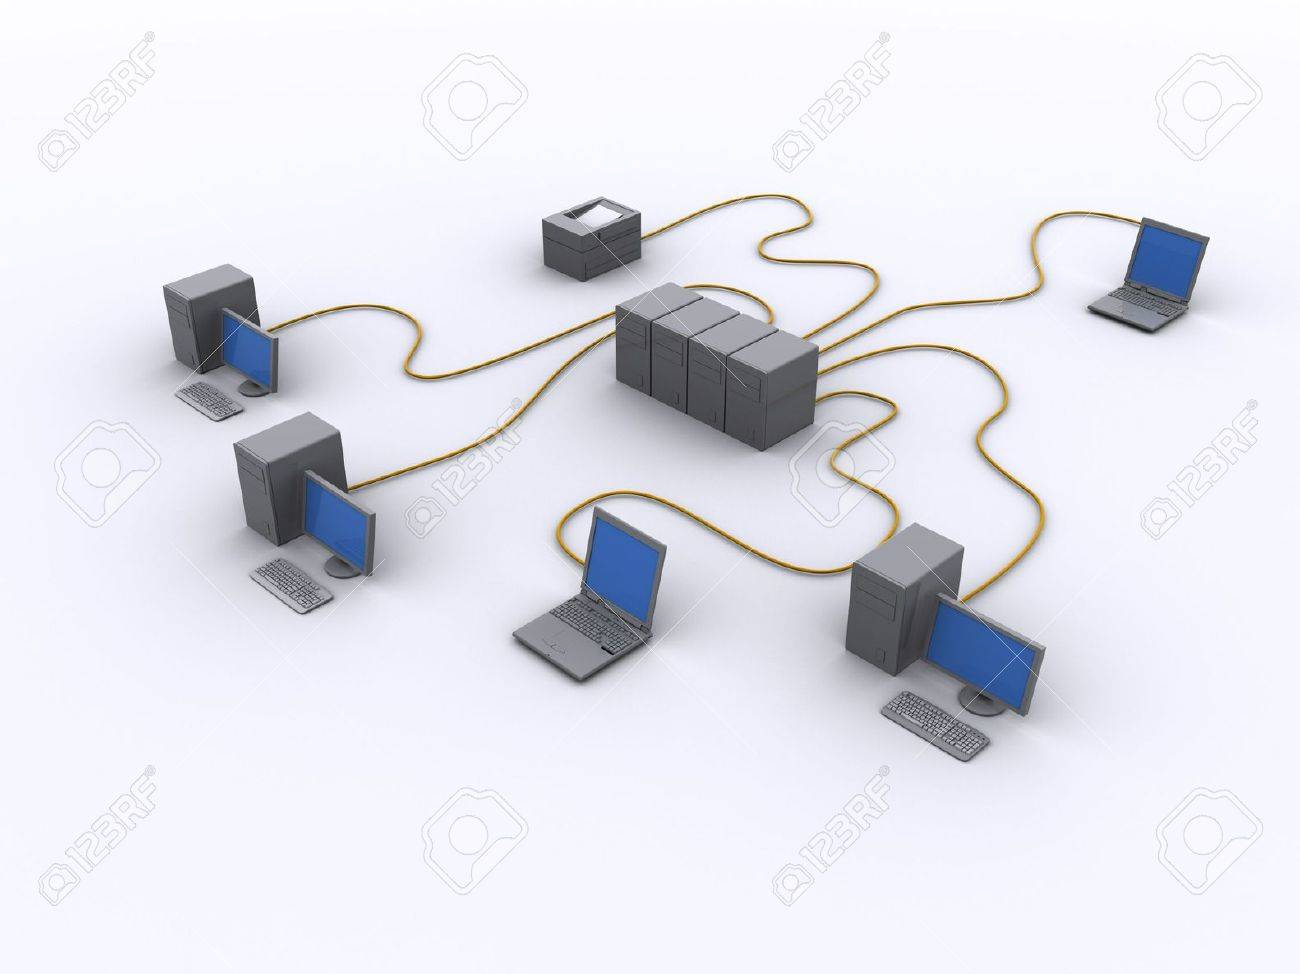 a picture of a wired network diagram on networking computer diagram, telecommunications diagram, networking switch diagram, networking tools, networking engineering diagram, networking system,